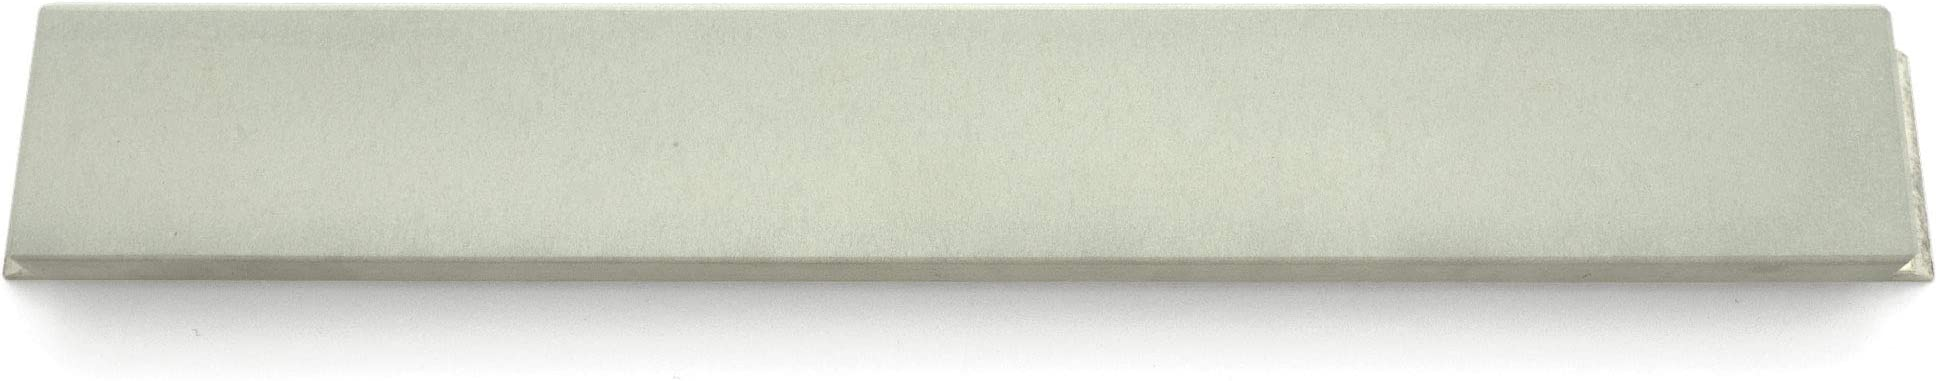 Suehiro New Cerax 4 x 1 x 0.25 Sharpening Stone for KME 800 grit Gritomatic